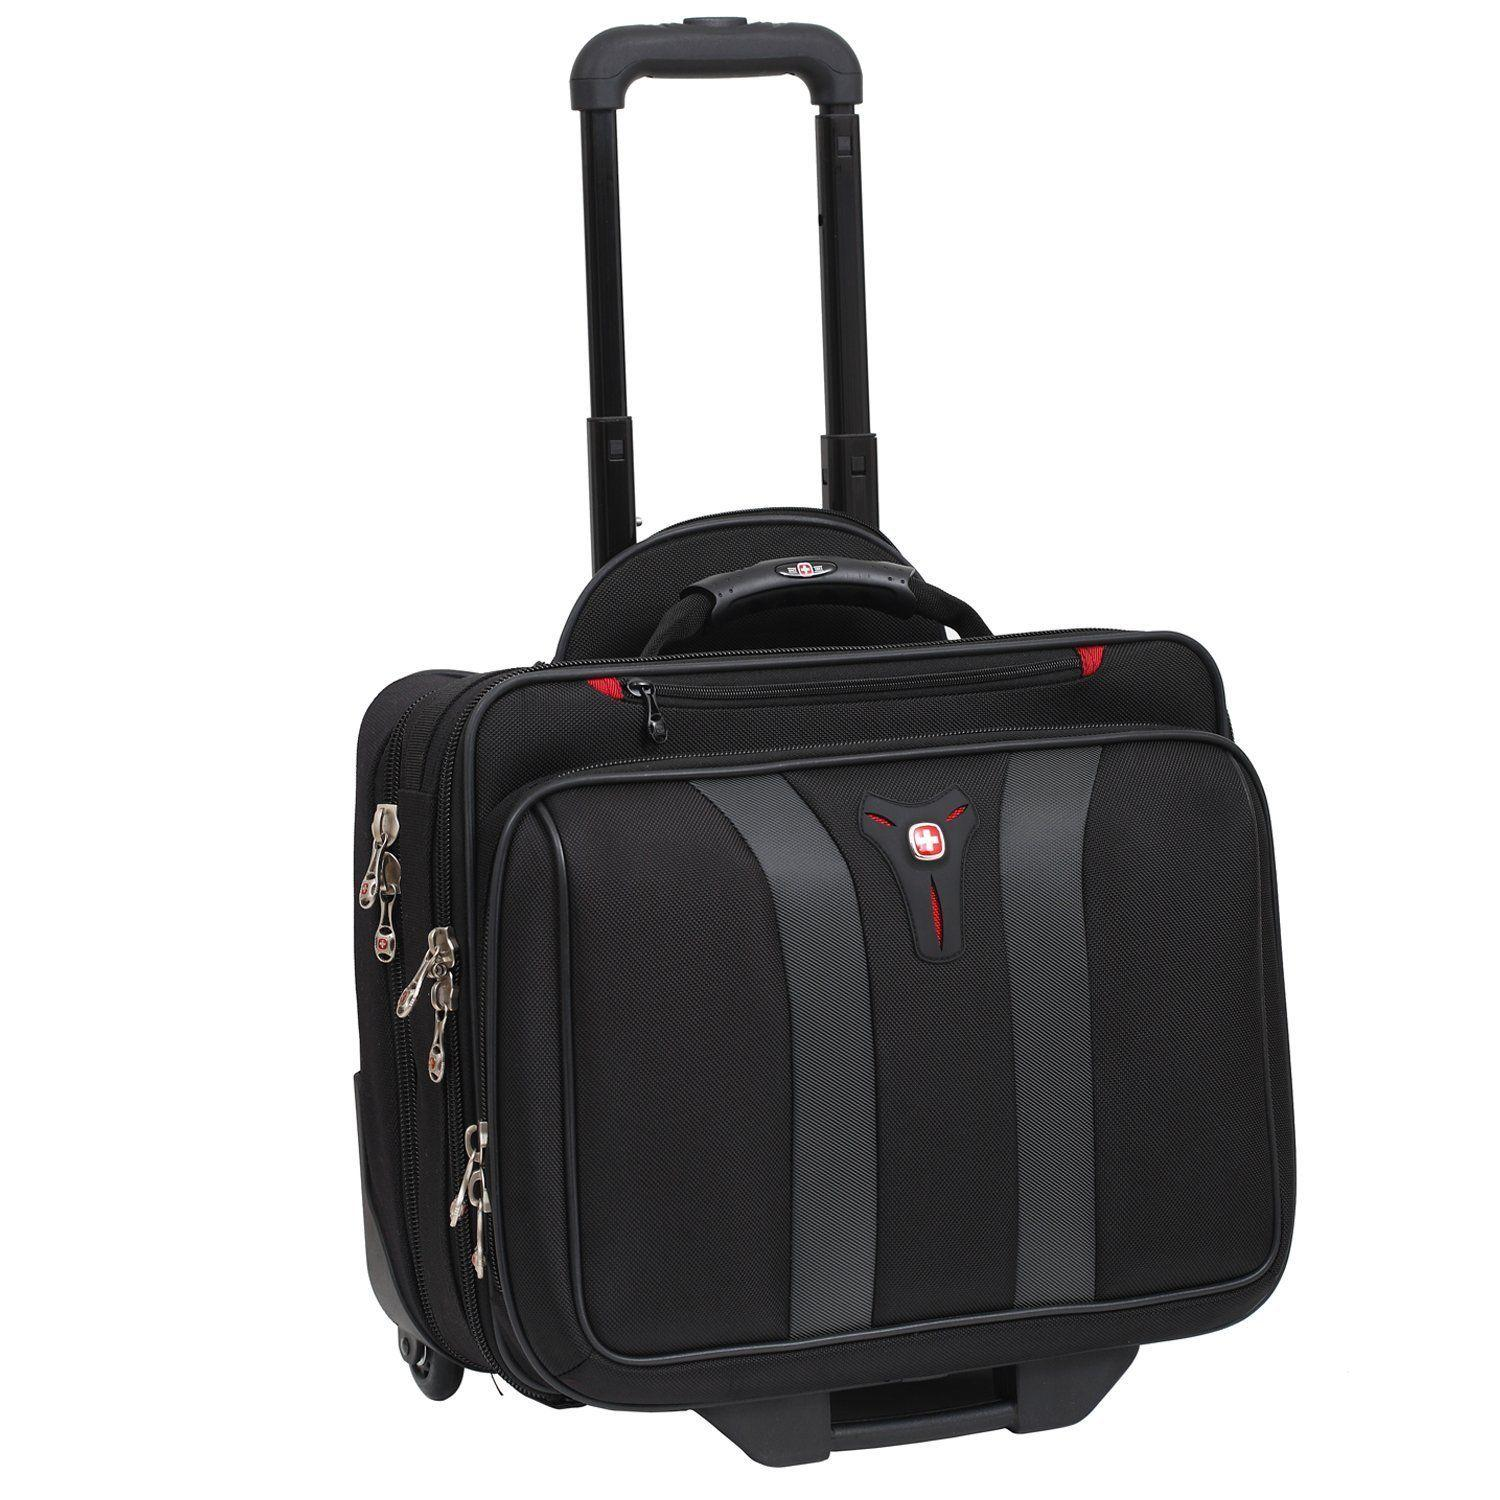 Wenger Swissgear Granada Rolling Business Case Luggage